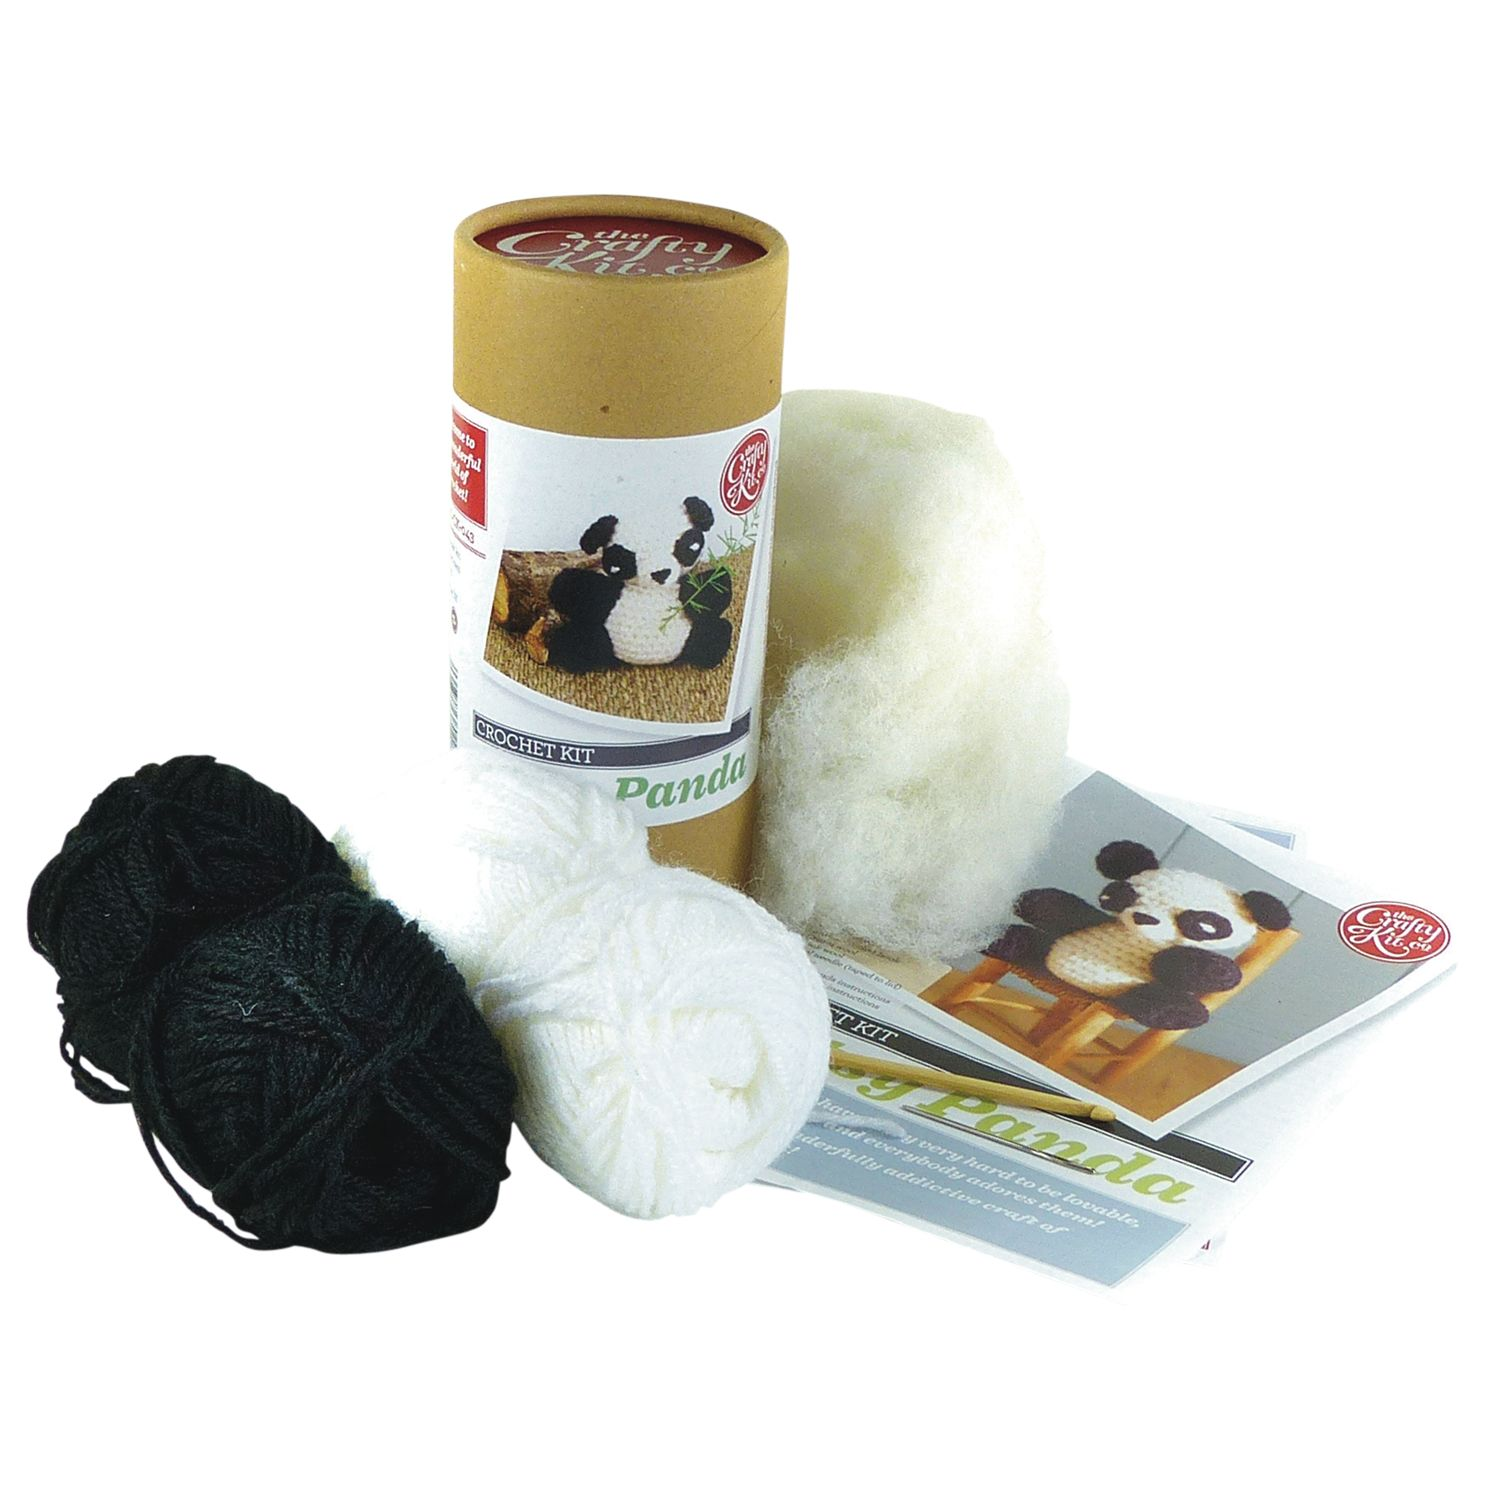 Apples To Pears Apples To Pears Patsy Panda Crochet Kit, Black/White